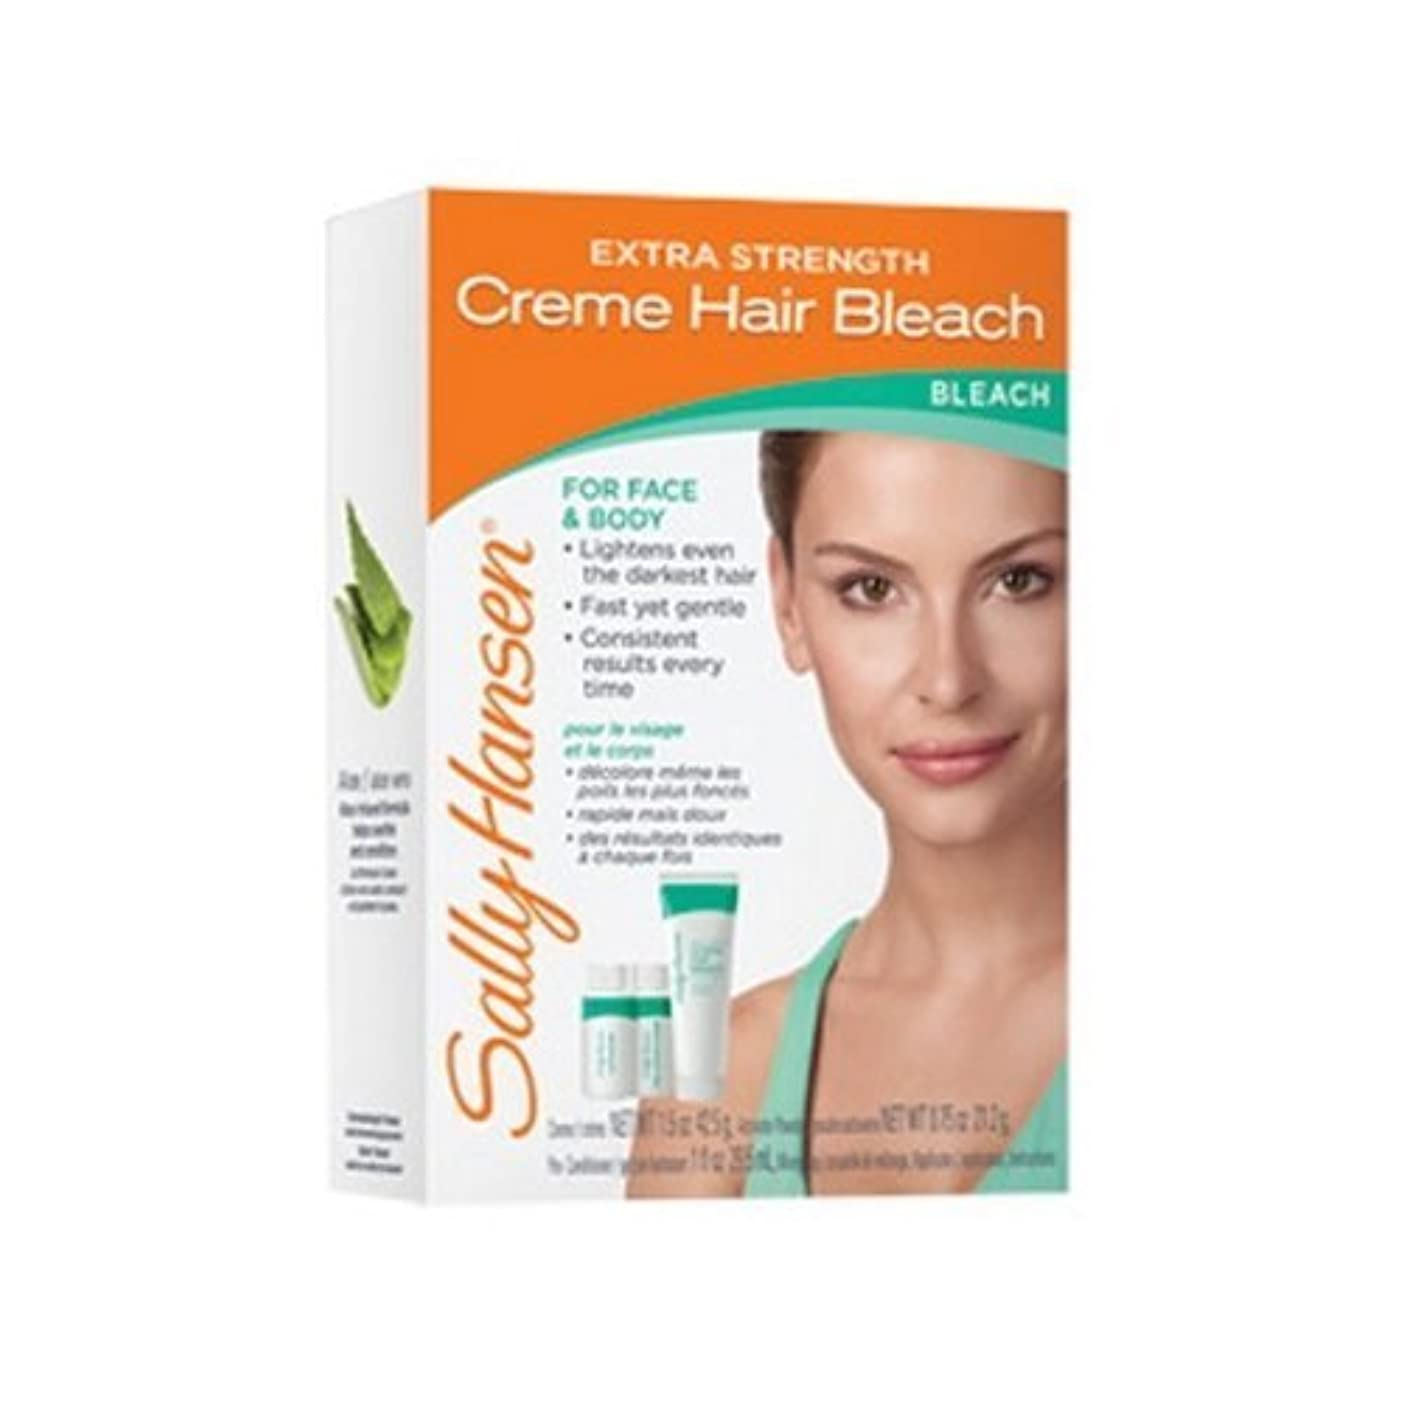 タール拾うエステート(3 Pack) SALLY HANSEN Extra Strength Creme Hair Bleach for Face & Body - SH2010 (並行輸入品)